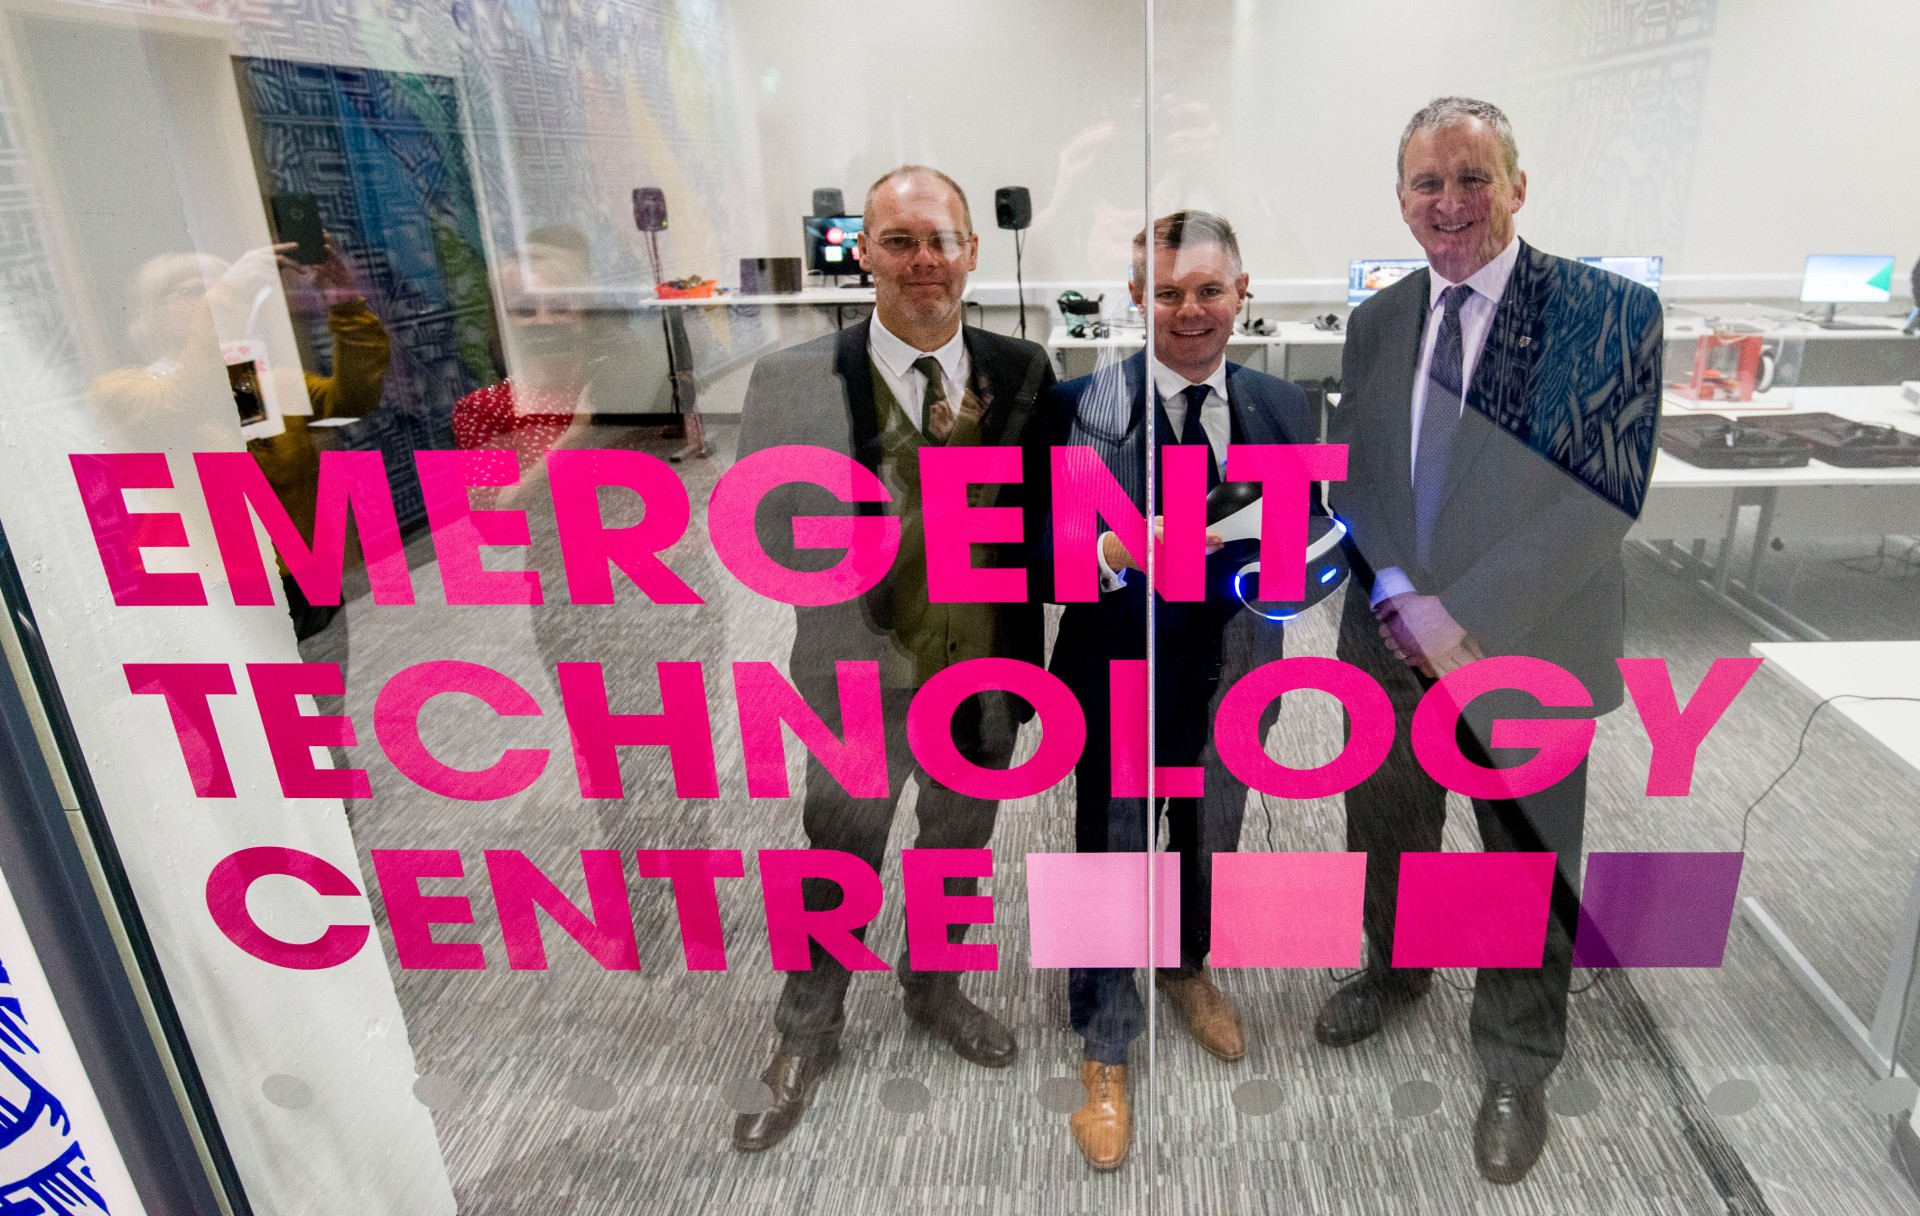 The Emergent Technology Centre